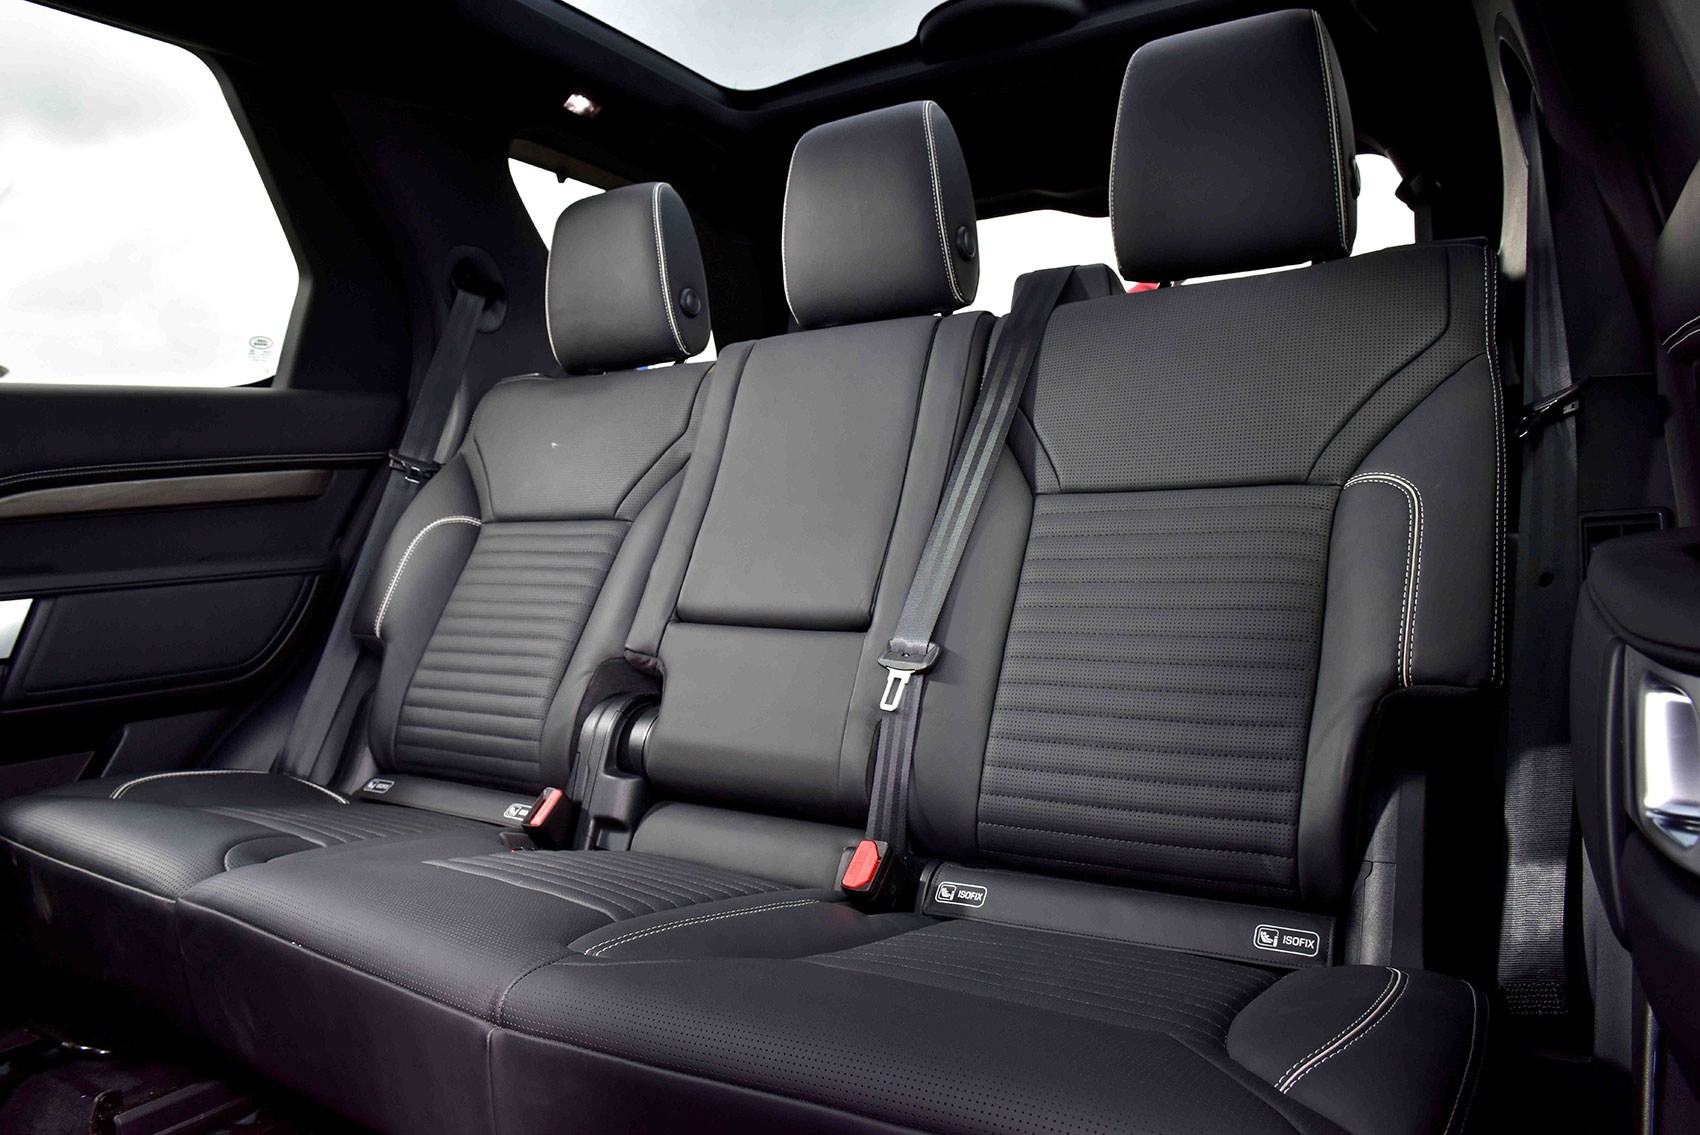 Land rover discovery vs audi q7 vs bmw x5 vs volvo xc90 for Interieur defender 90